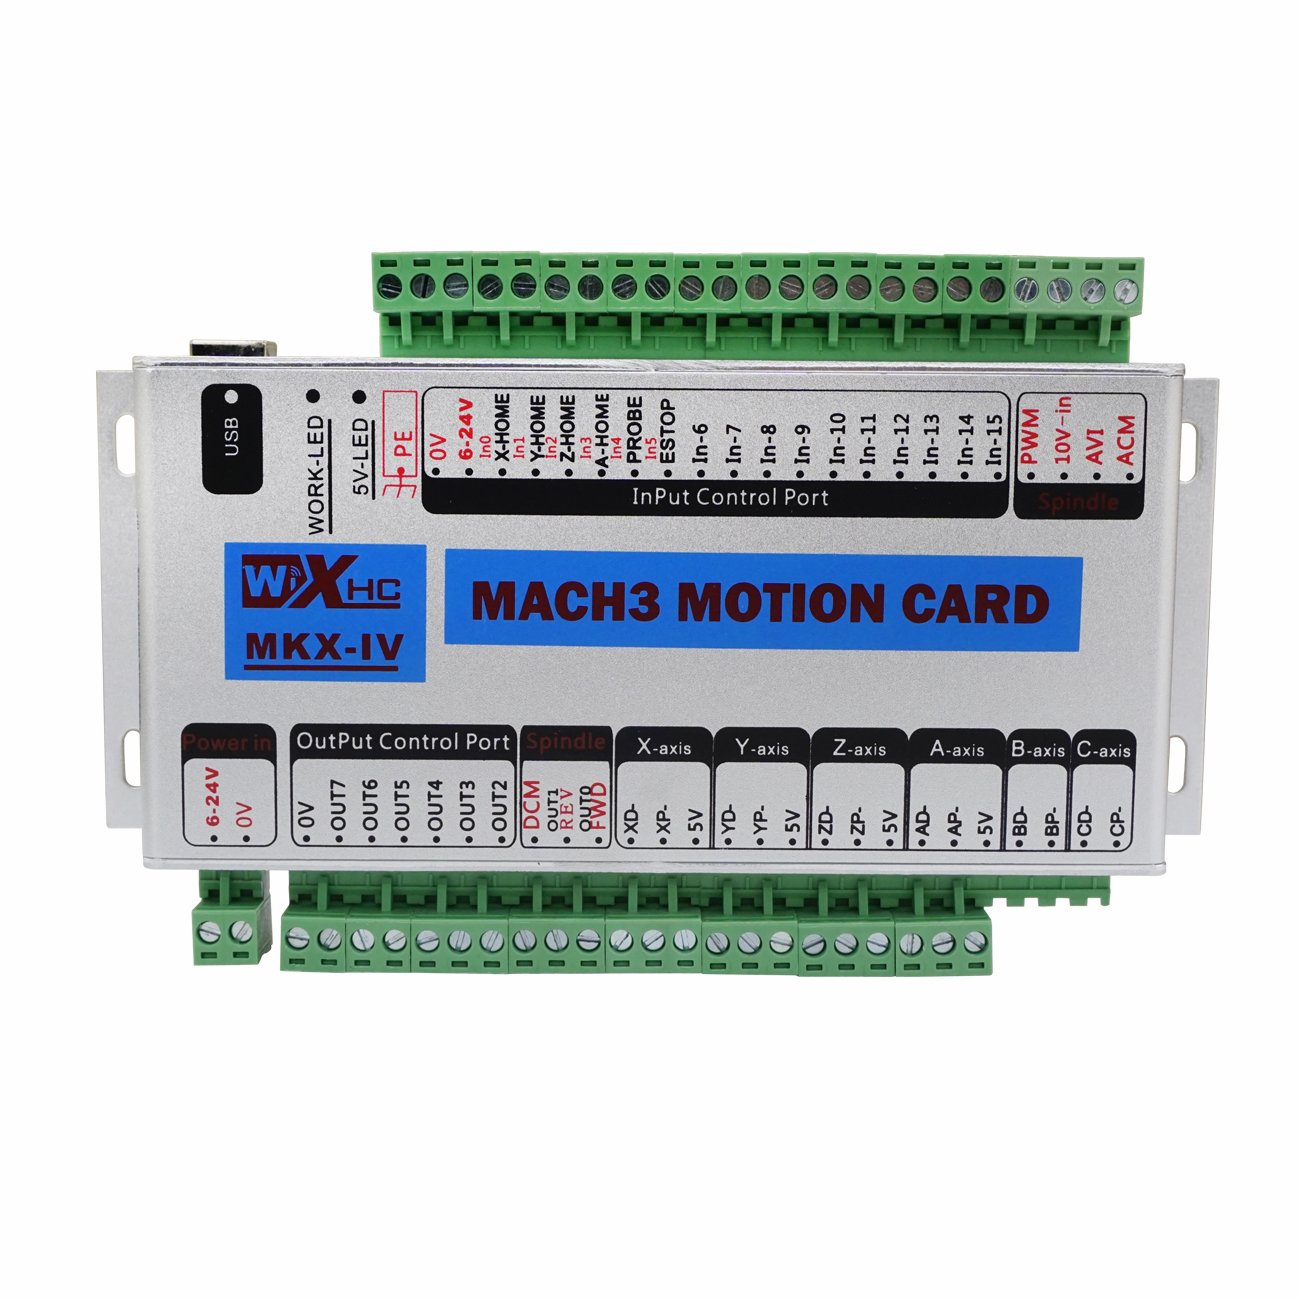 400KHz 3 Axis Mach3 Motion Control Card USB 2.0 CNC Interface Breakout Board Xiamen DuZheng Electronic Commerce Co. Ltd L09020101005-1